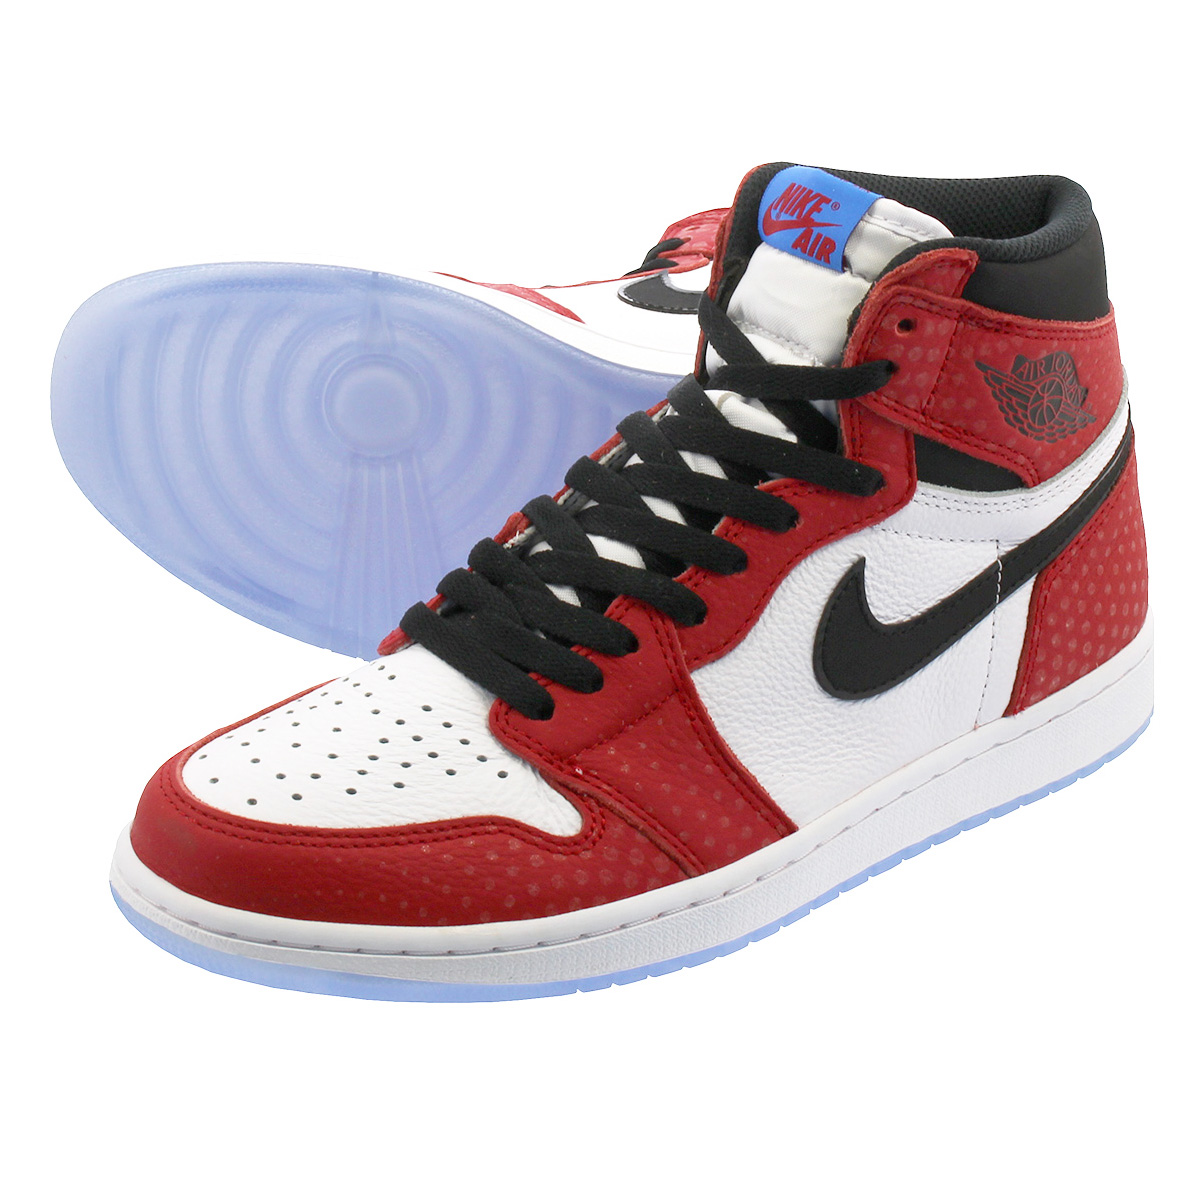 timeless design d90ac c800c LOWTEX PLUS: NIKE AIR JORDAN 1 RETRO HIGH OG Nike Air Jordan ...